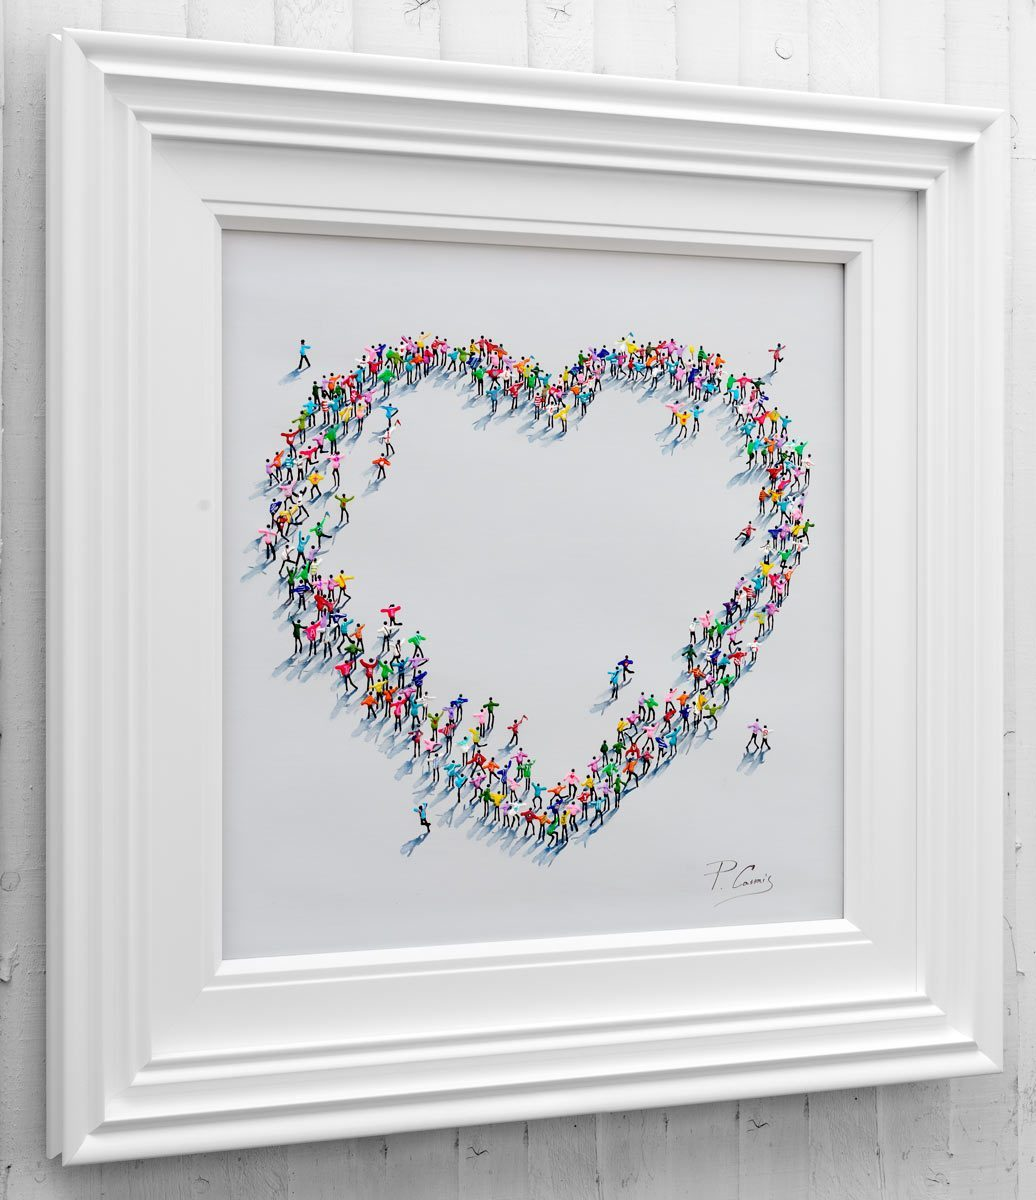 Heart Warming - Original Paola Cassais Framed